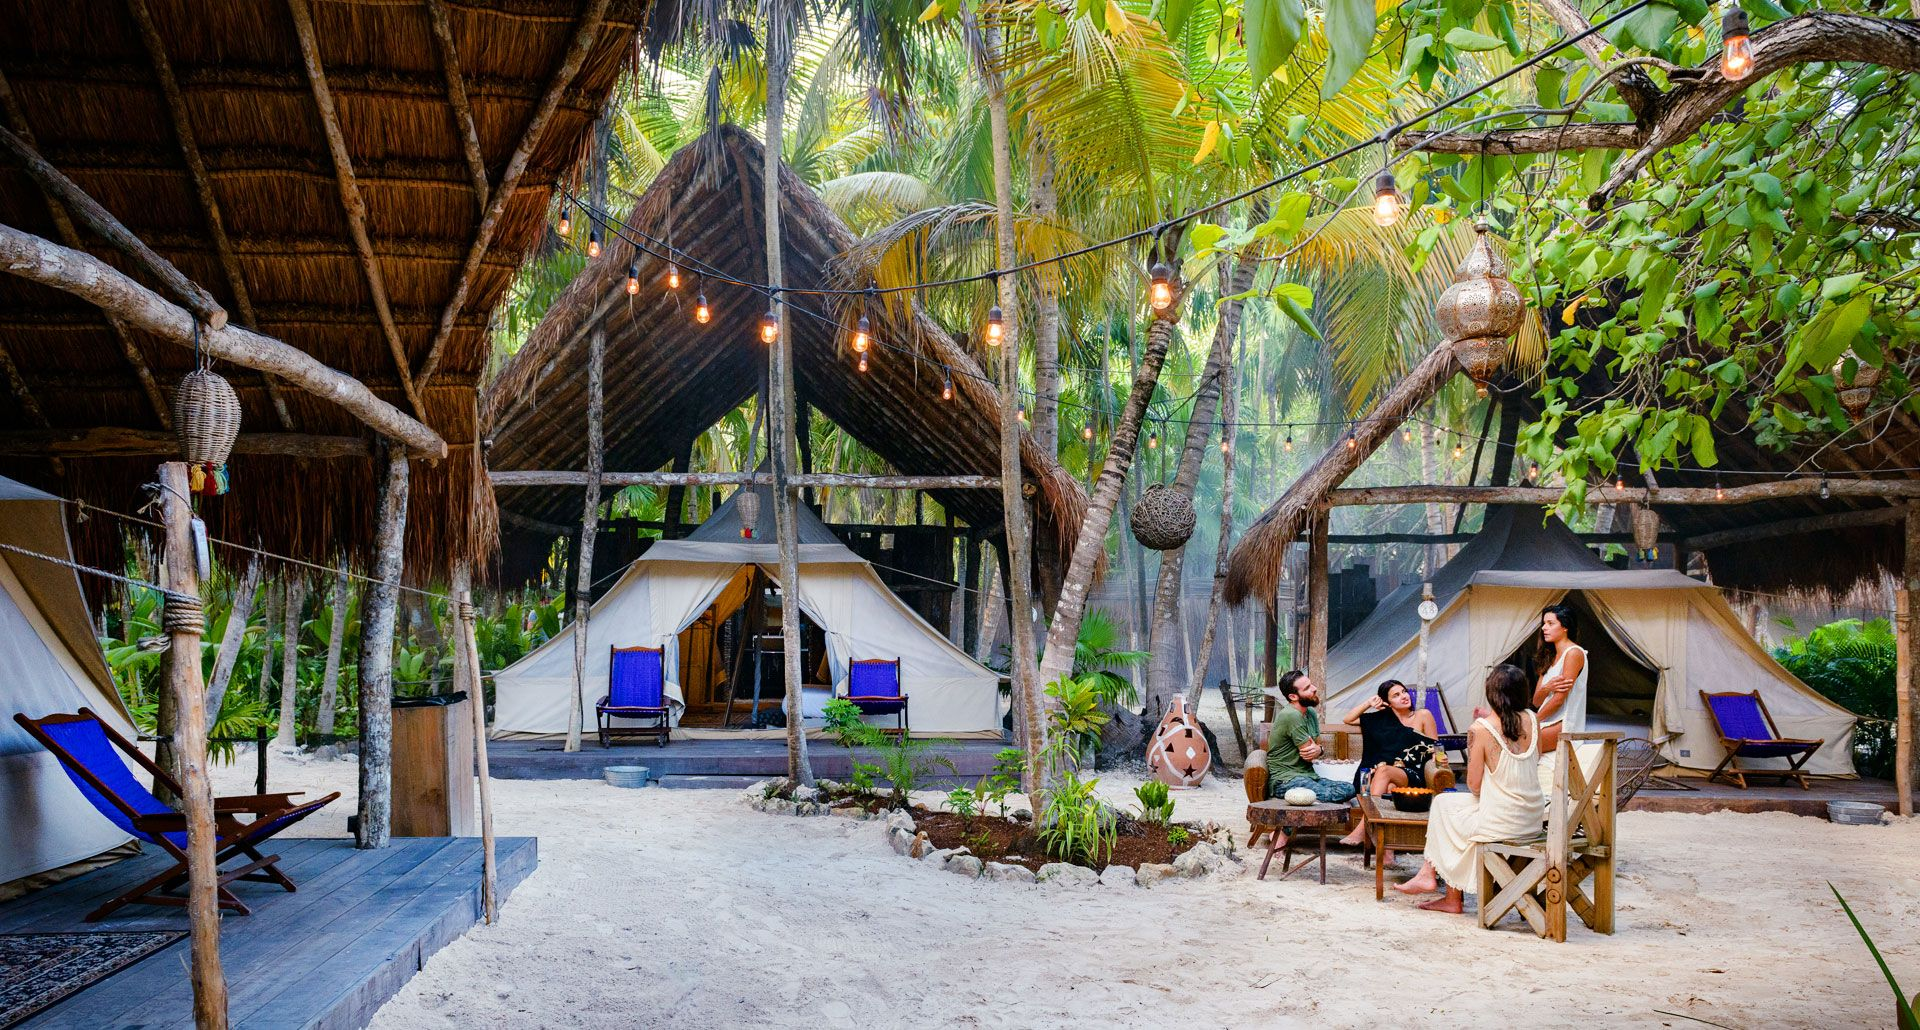 Call of the Wild | Glamping resorts, Glamping, Tulum hotels